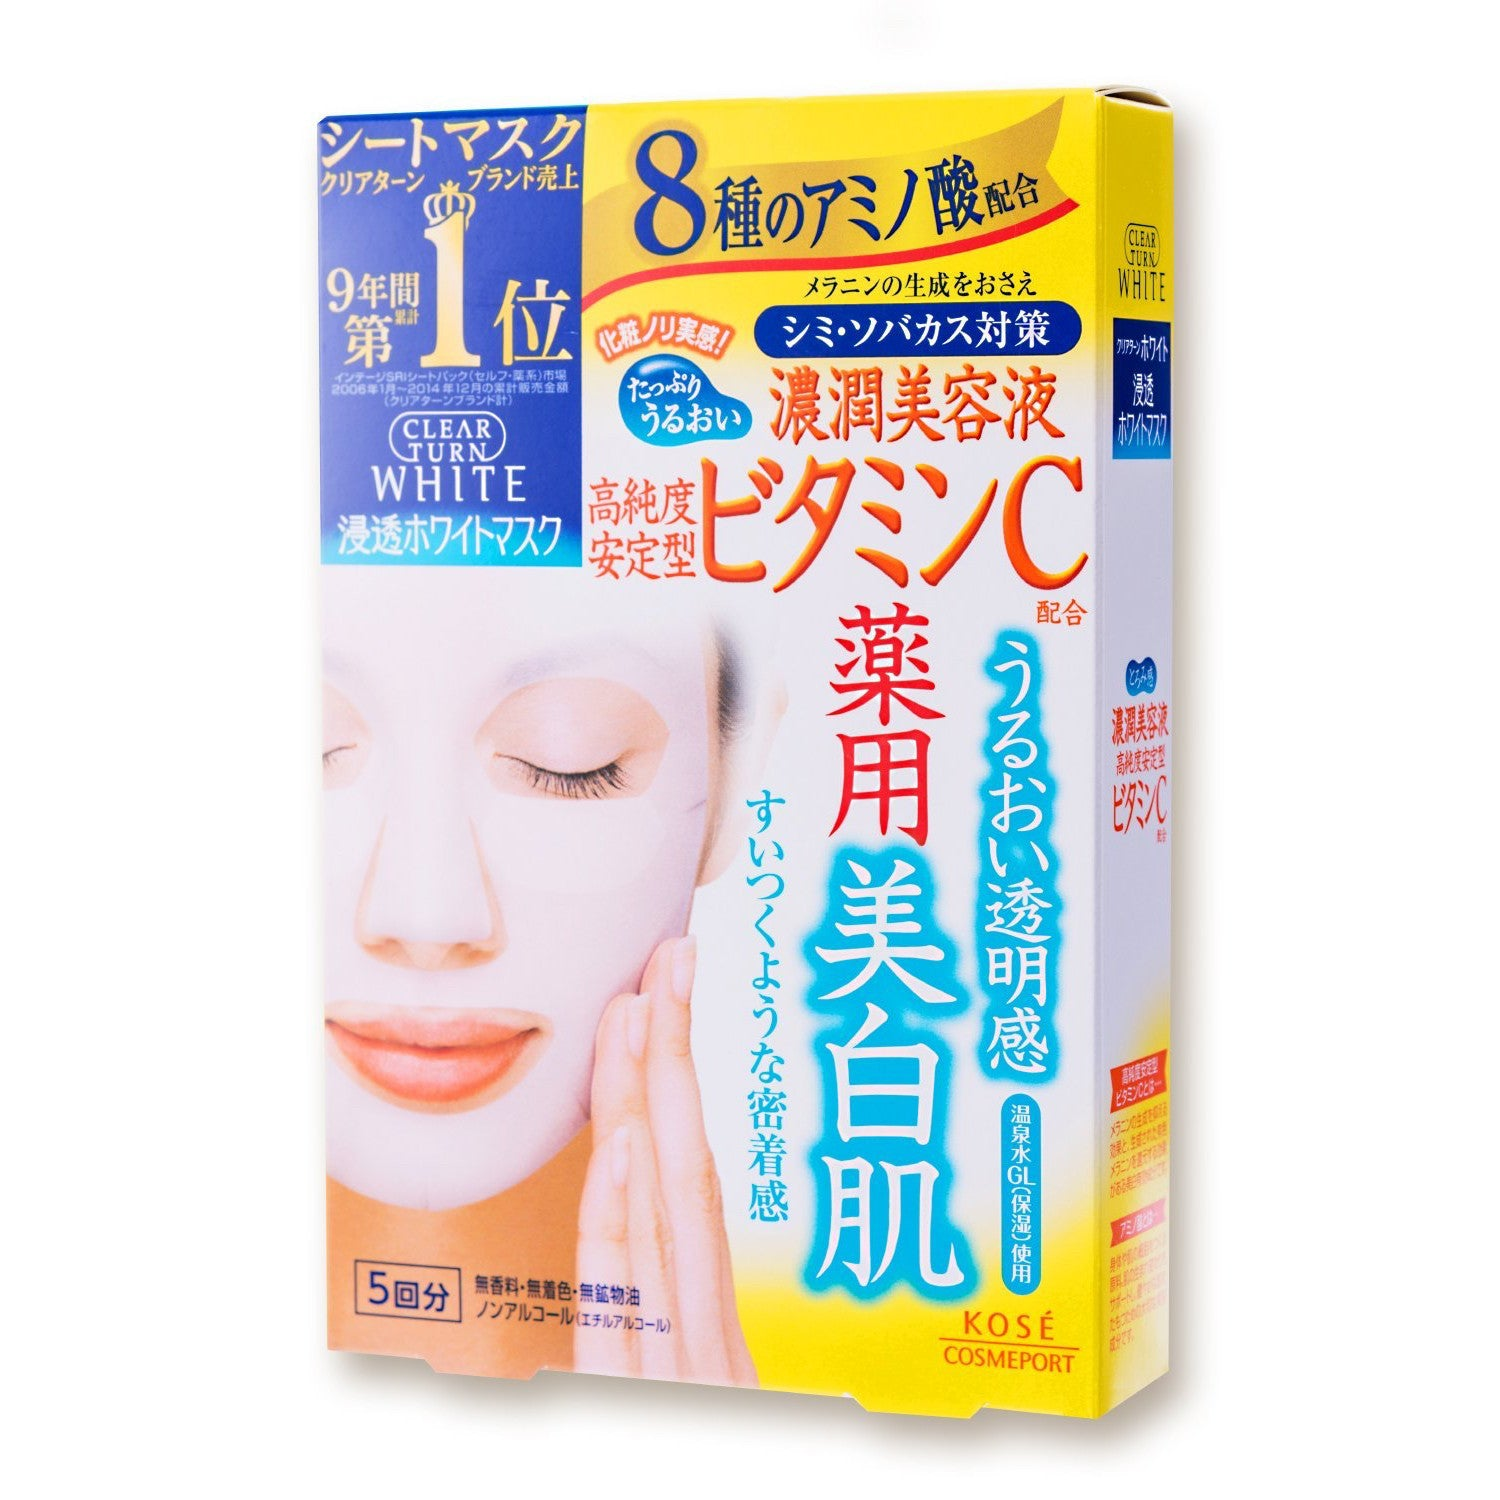 KOSE Clear Turn White Vitamin C Facial Mask Sheets%ТЖУУ% 5 Count